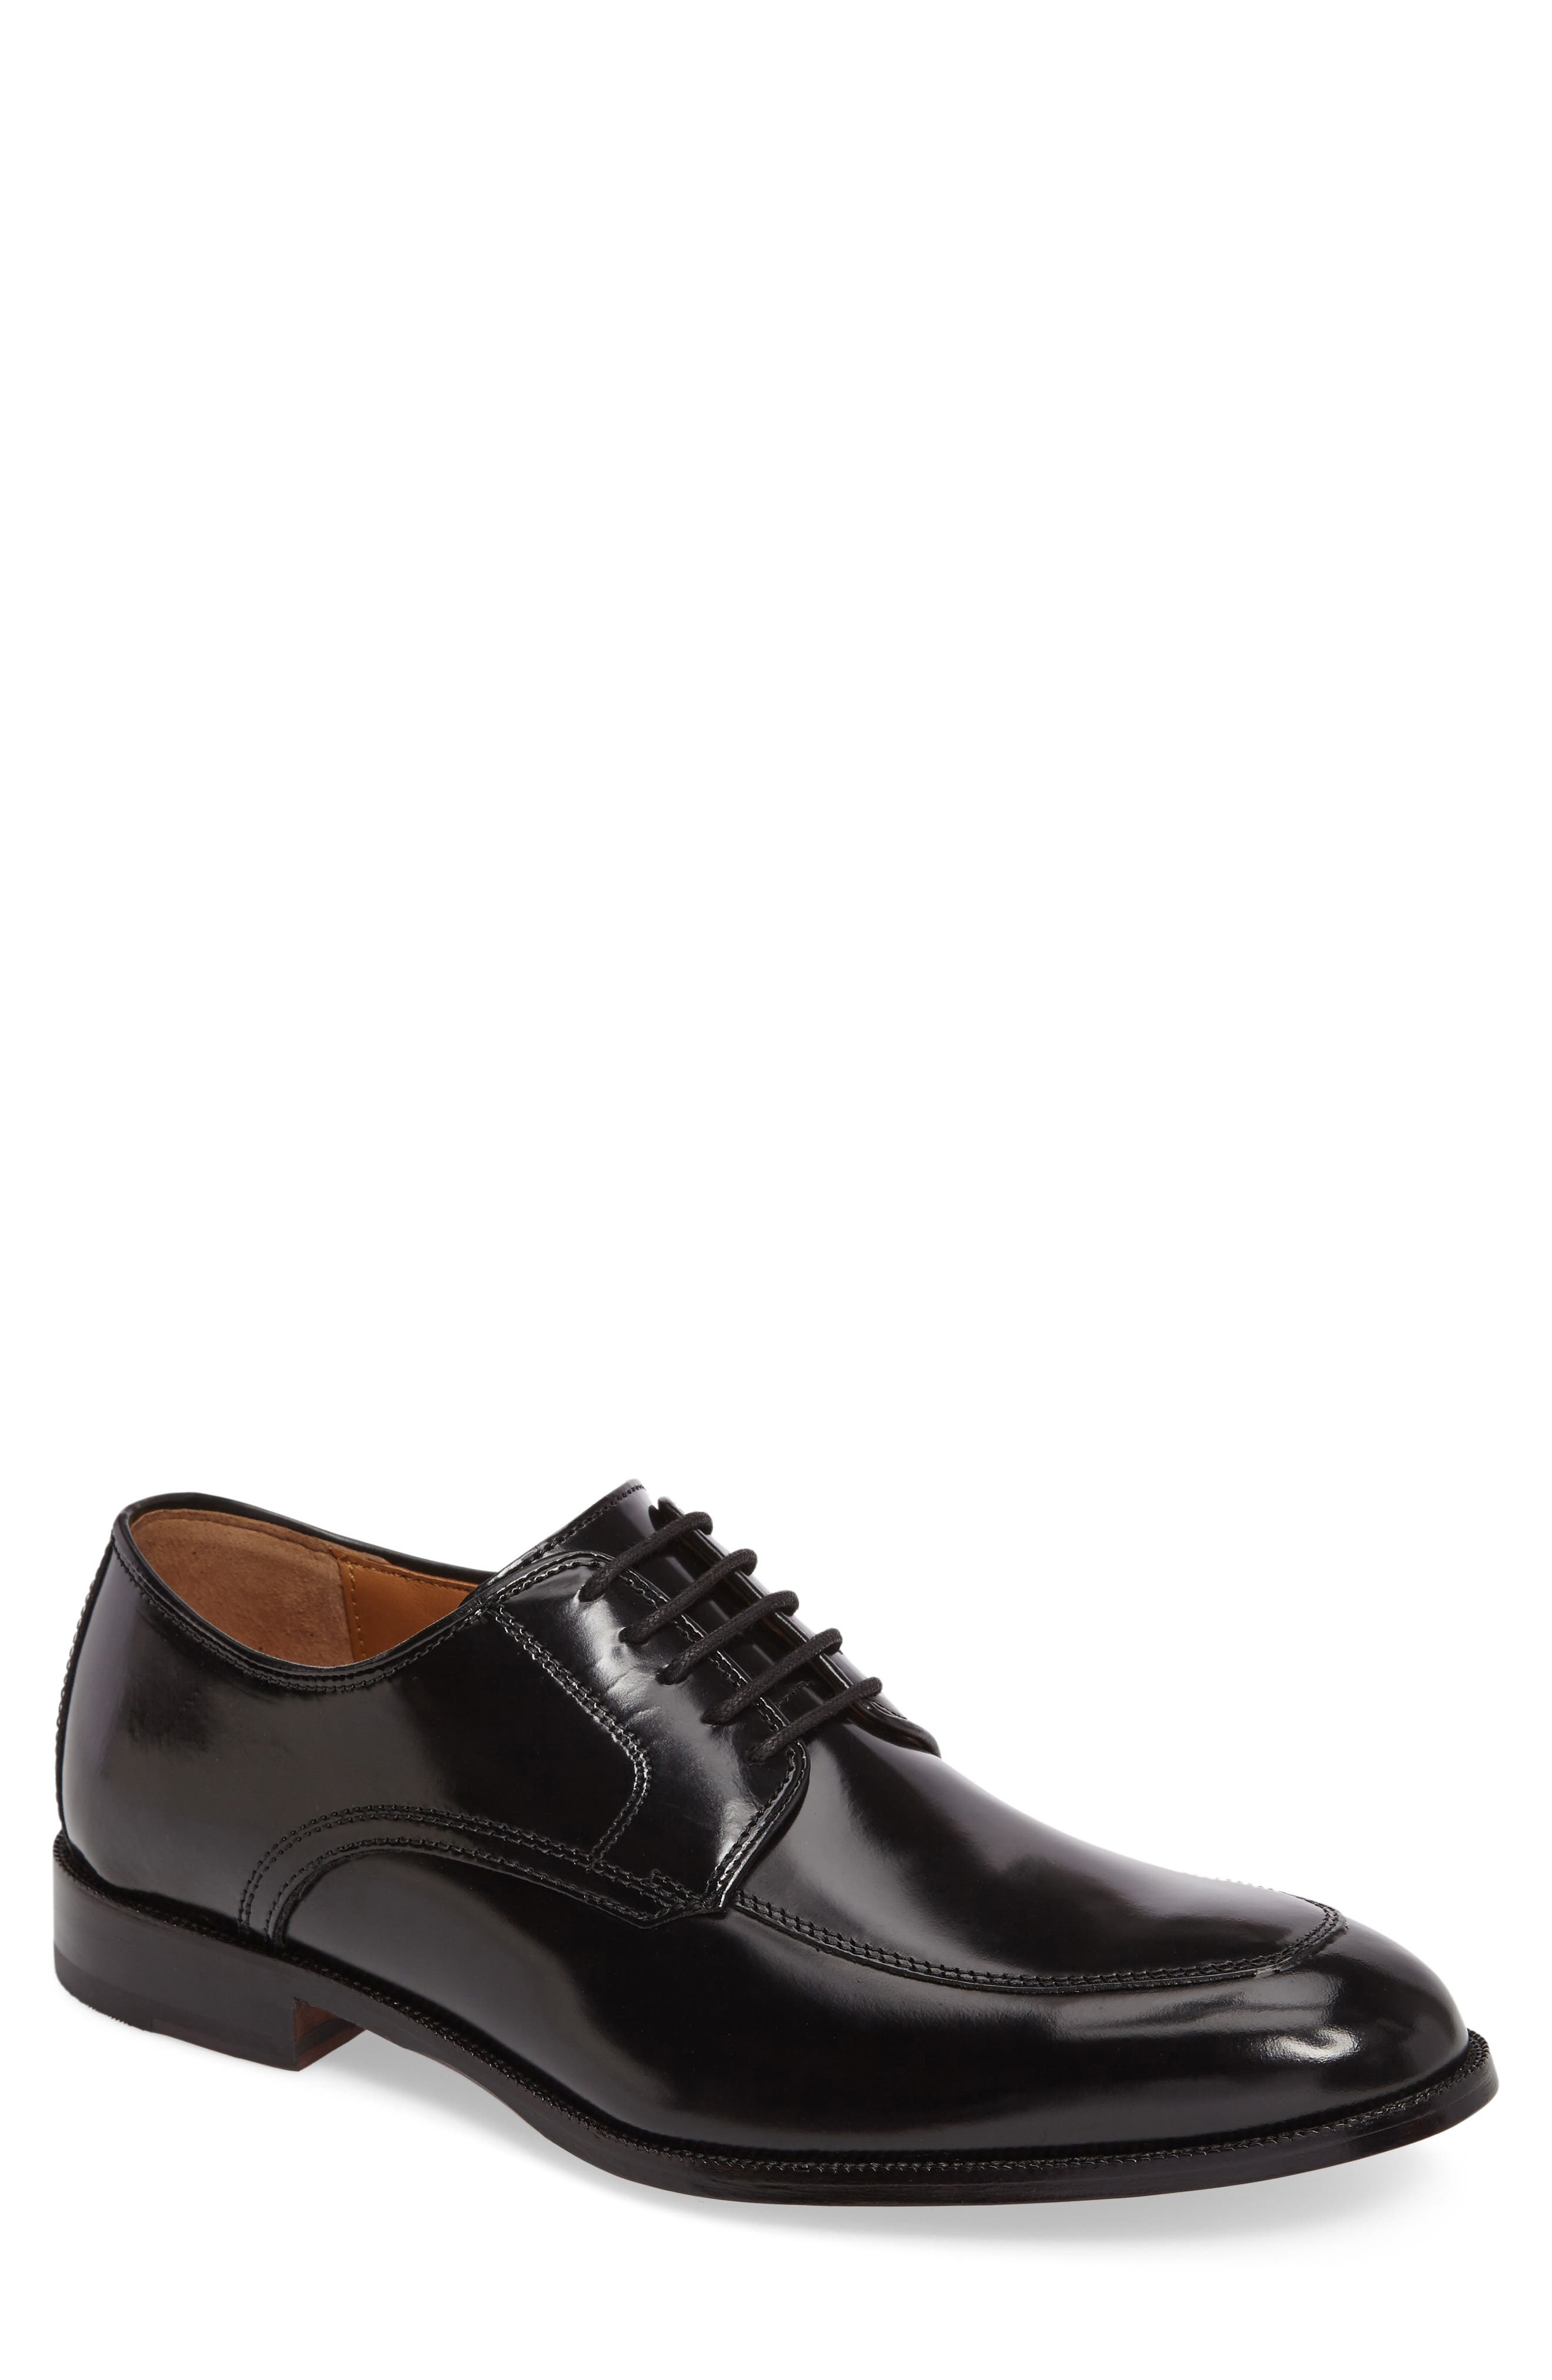 Bradford Apron-Toe Oxford,                             Main thumbnail 1, color,                             BLACK LEATHER